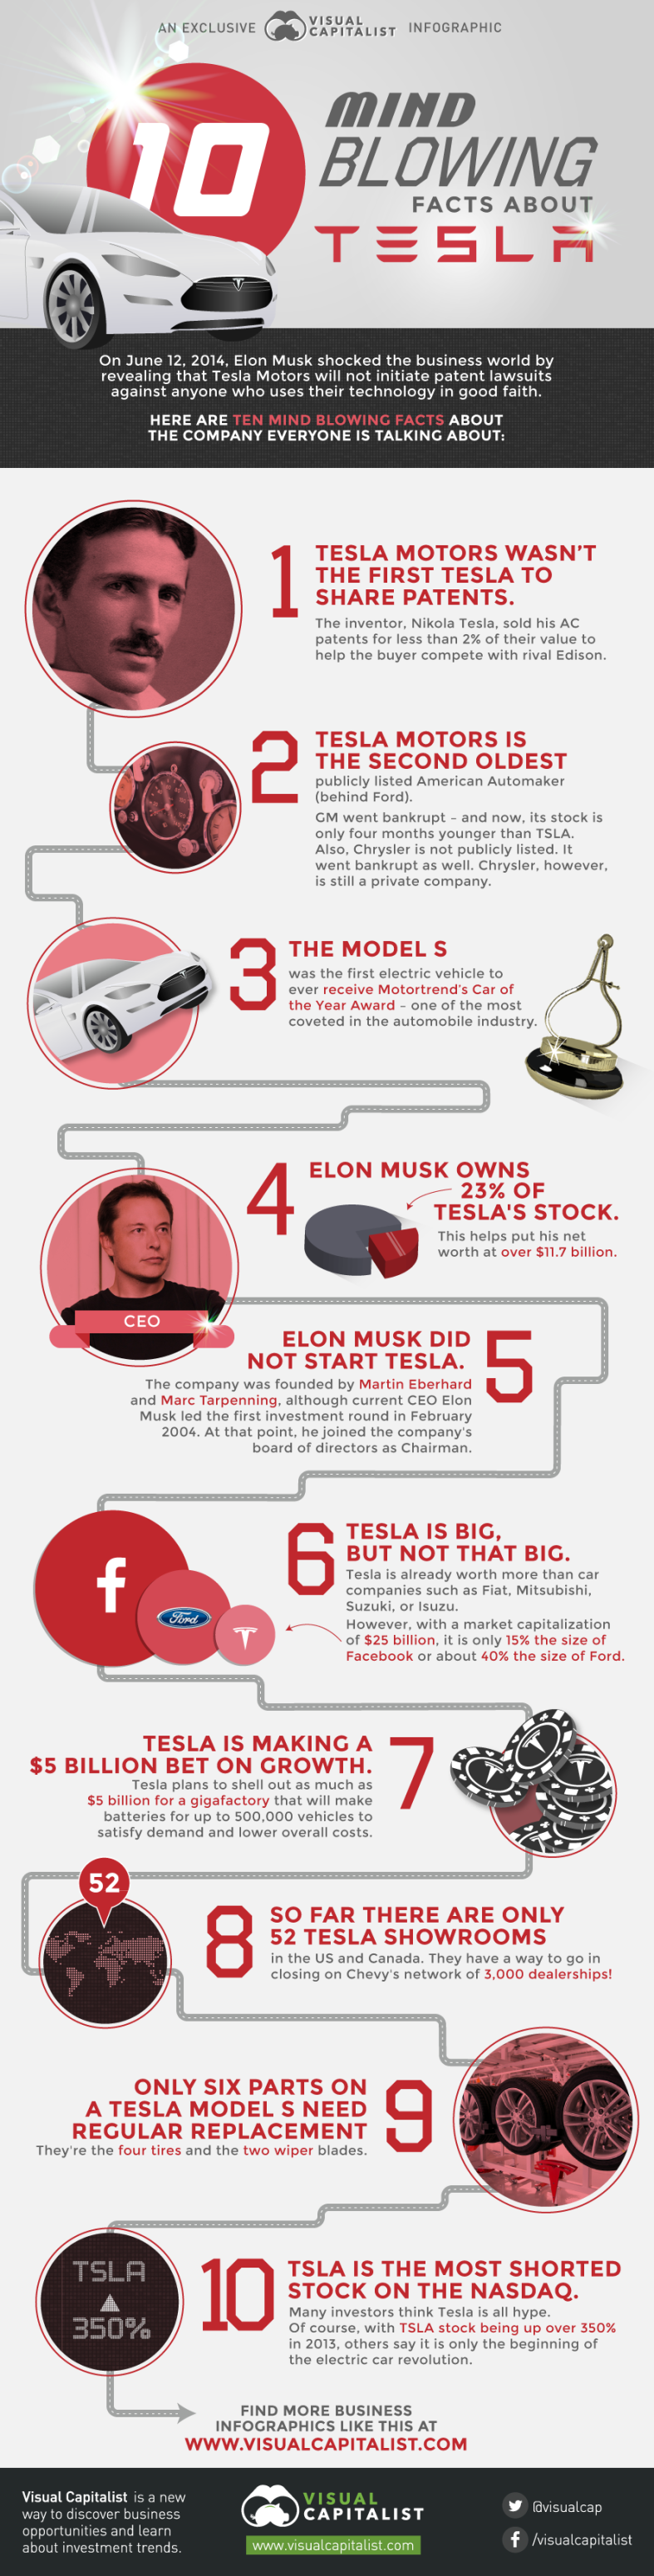 10 Mind Blowing Facts About Tesla